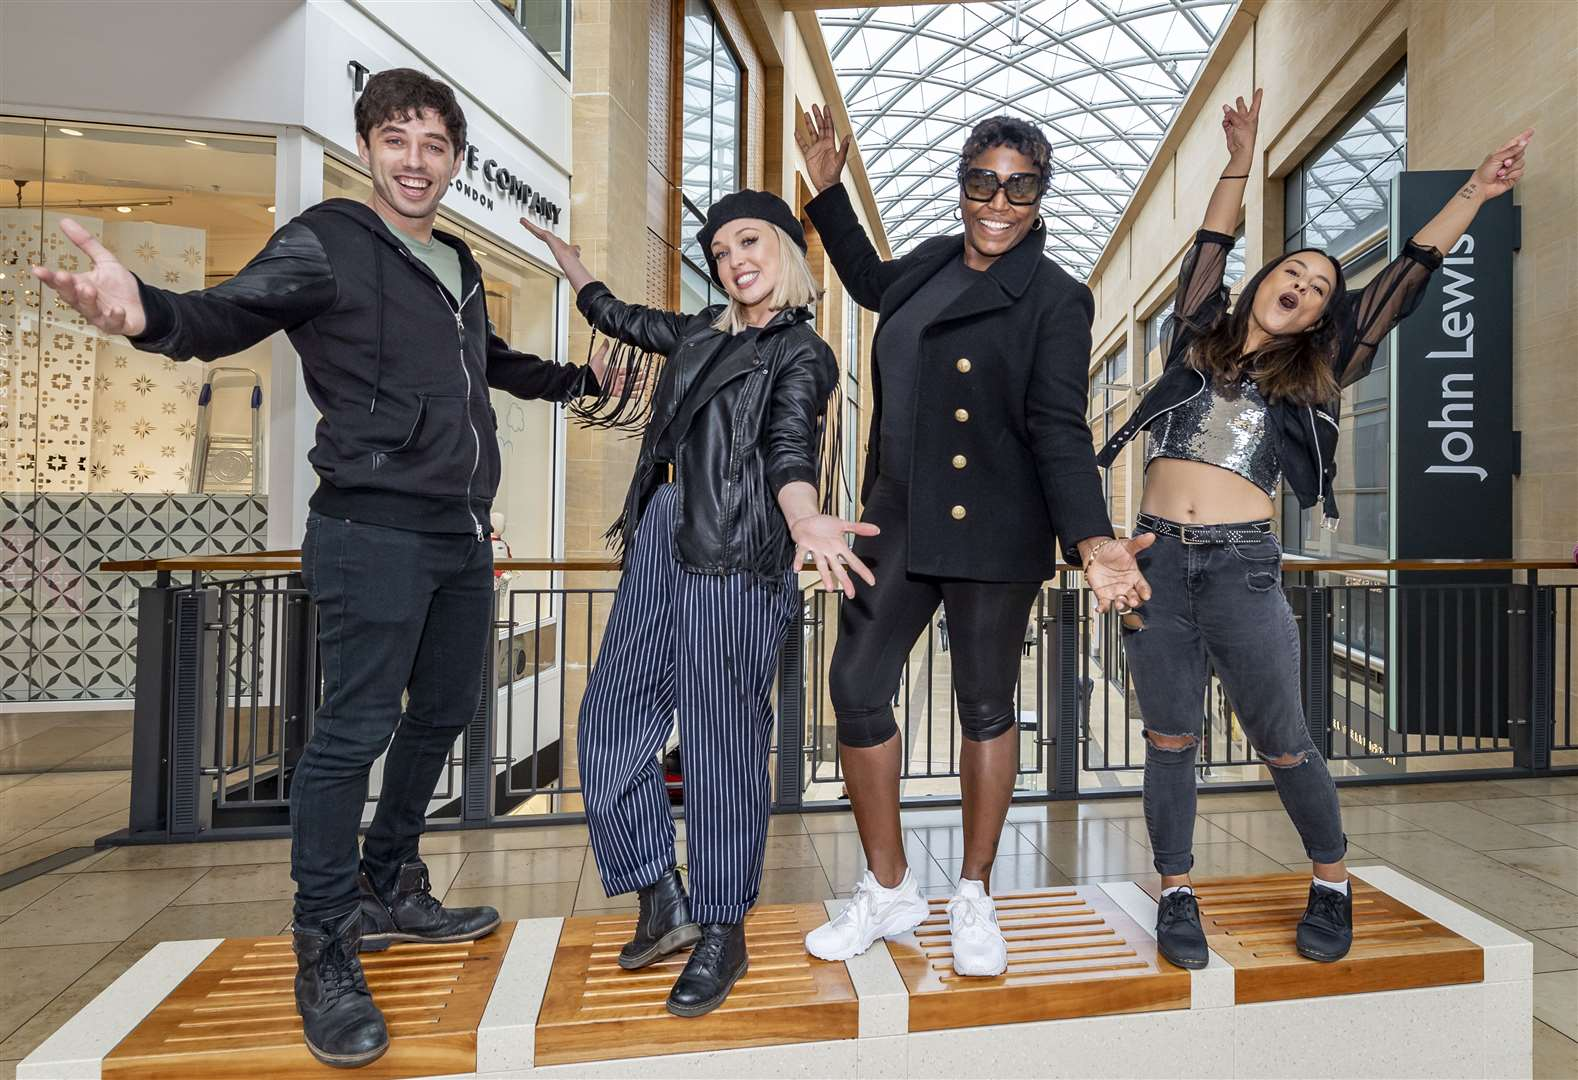 Fame cast from left Keith Jack, Jorgie Porter, Mica Paris and Steph Rojas, appearing at the Arts Theatre, seen here in the Grand Arcade. Picture: Keith Heppell. (9540793)